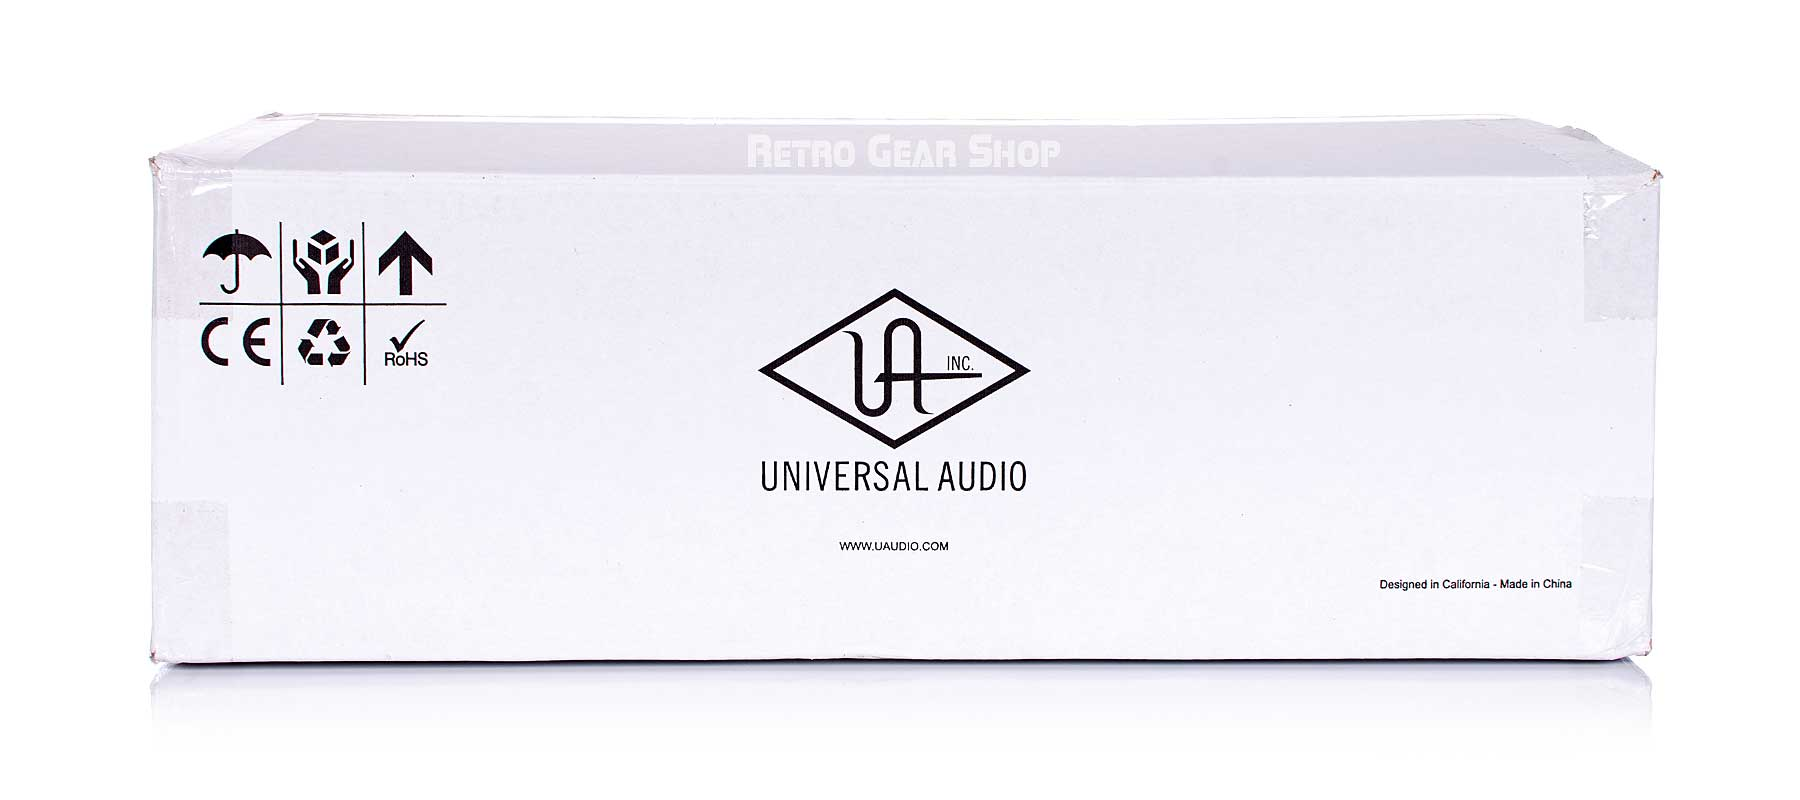 Universal Audio 4-710D Box